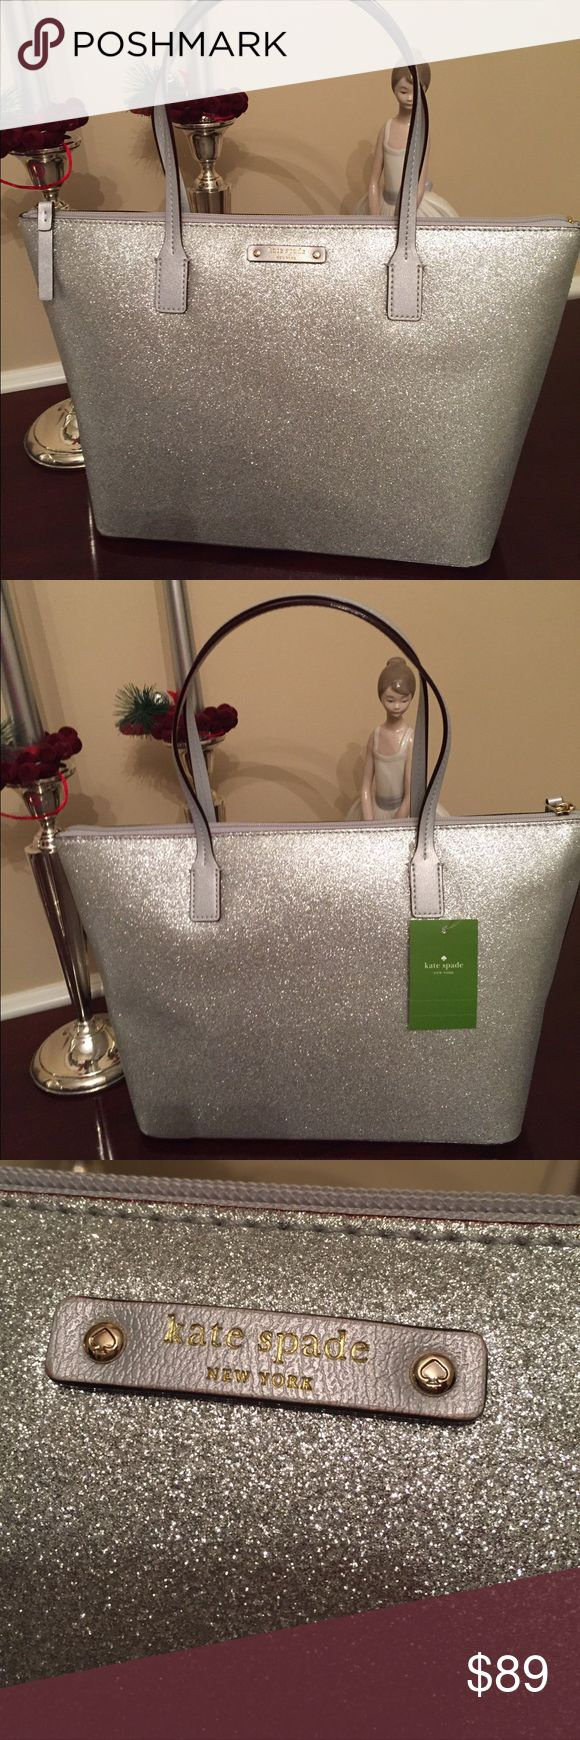 Kate Spade Haven Lane Silver Bag! Kate Spade Haven Lane Silver Bag!  New with Tags beautiful Silver tote bag. A great bag for a night on the town or a day shopping with the girls. Perfection!! kate spade Bags Shoulder Bags